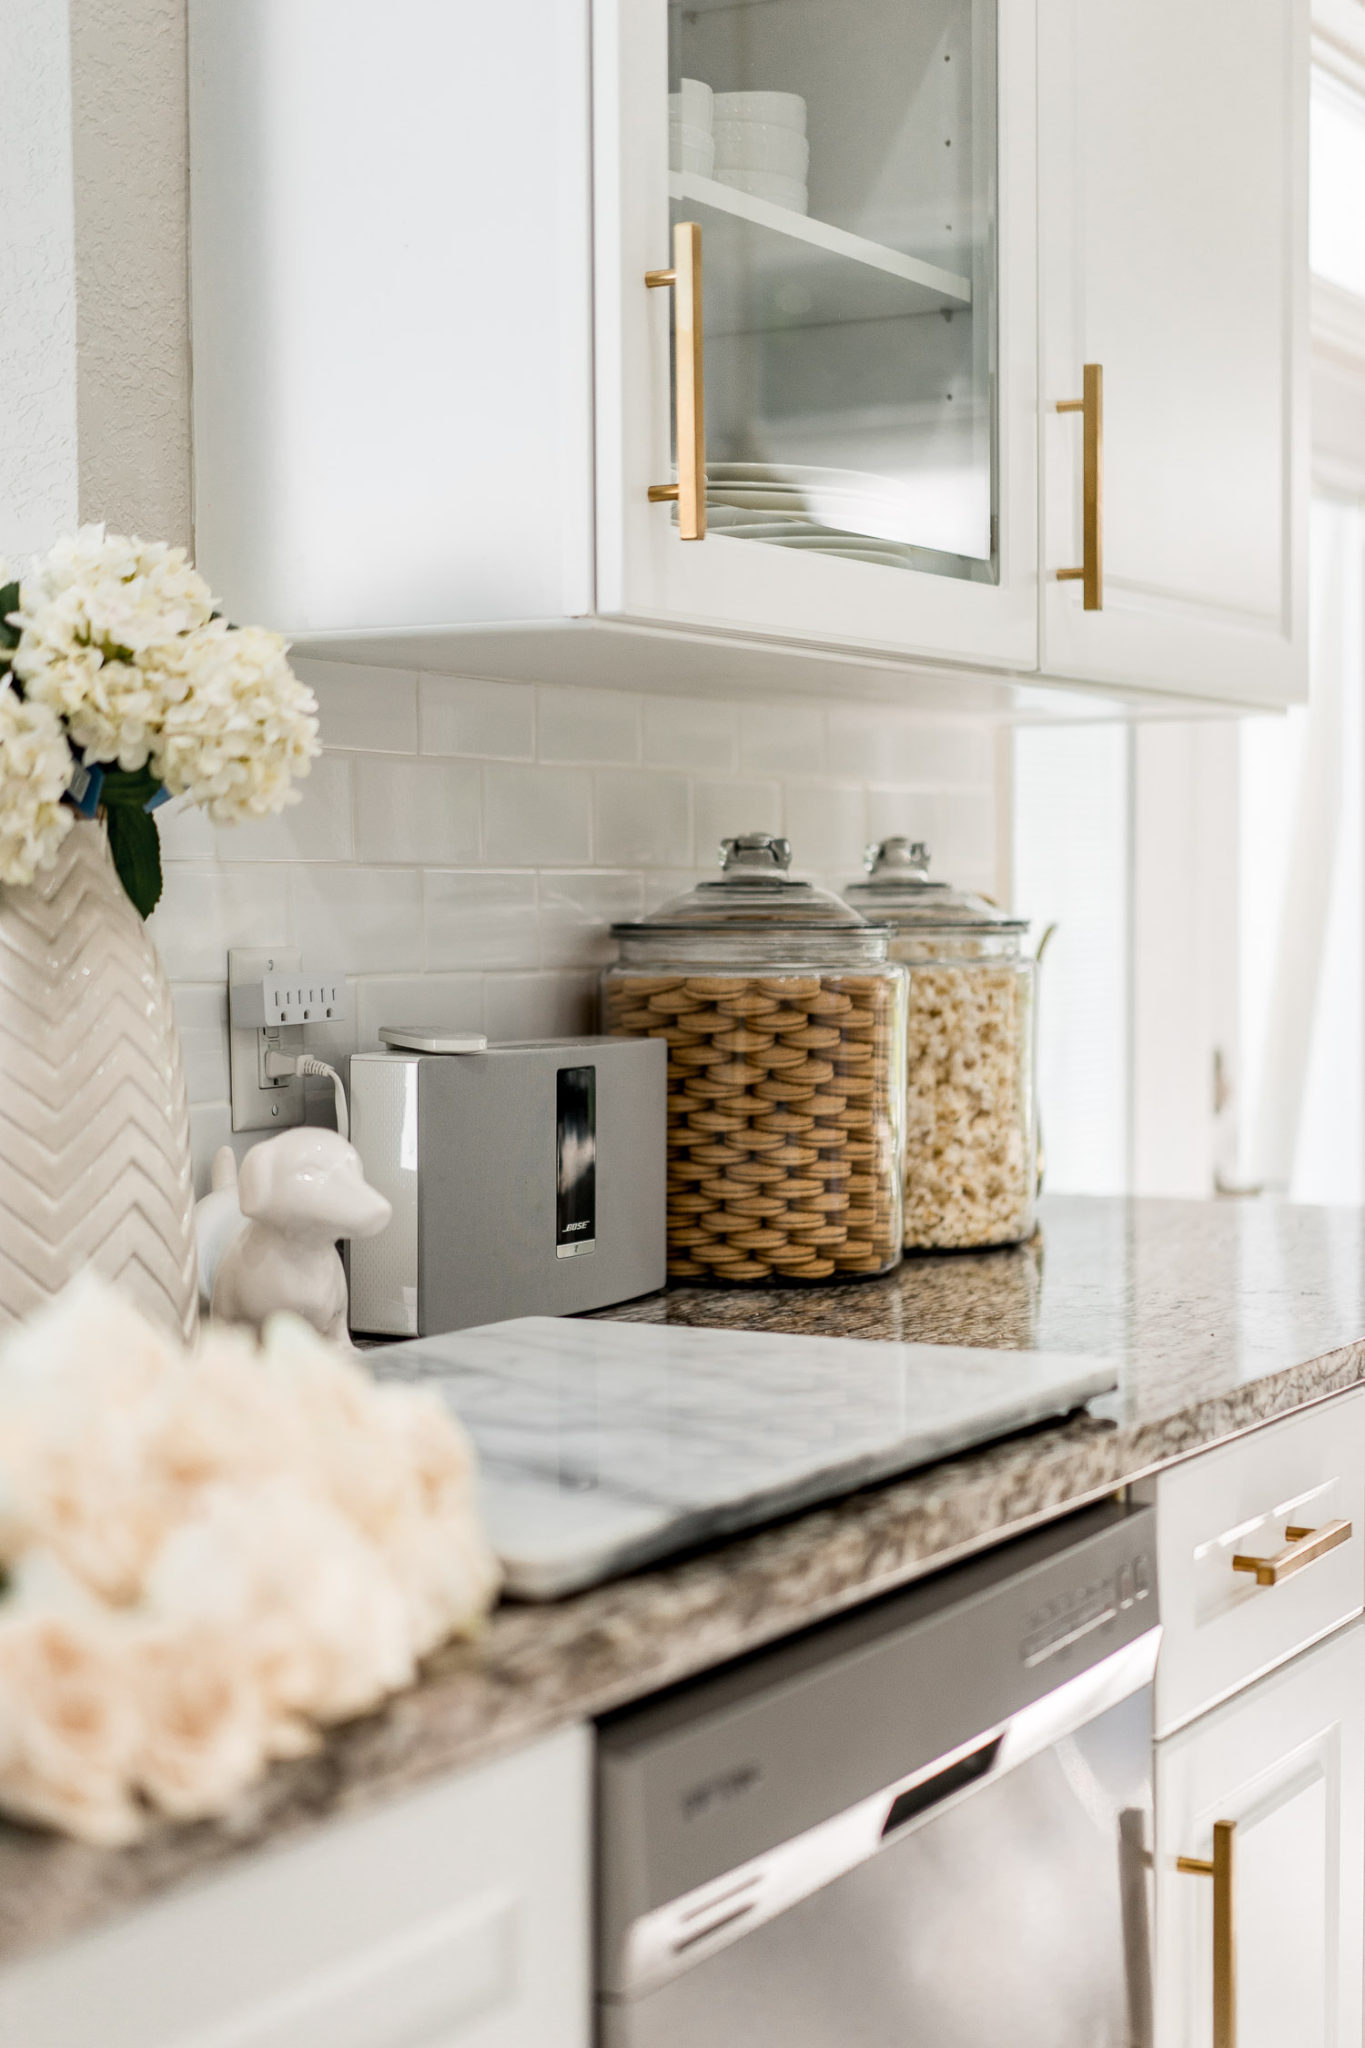 Kitchen Decor Kitchen Decor Refresh With Stage A Glam Lifestyle